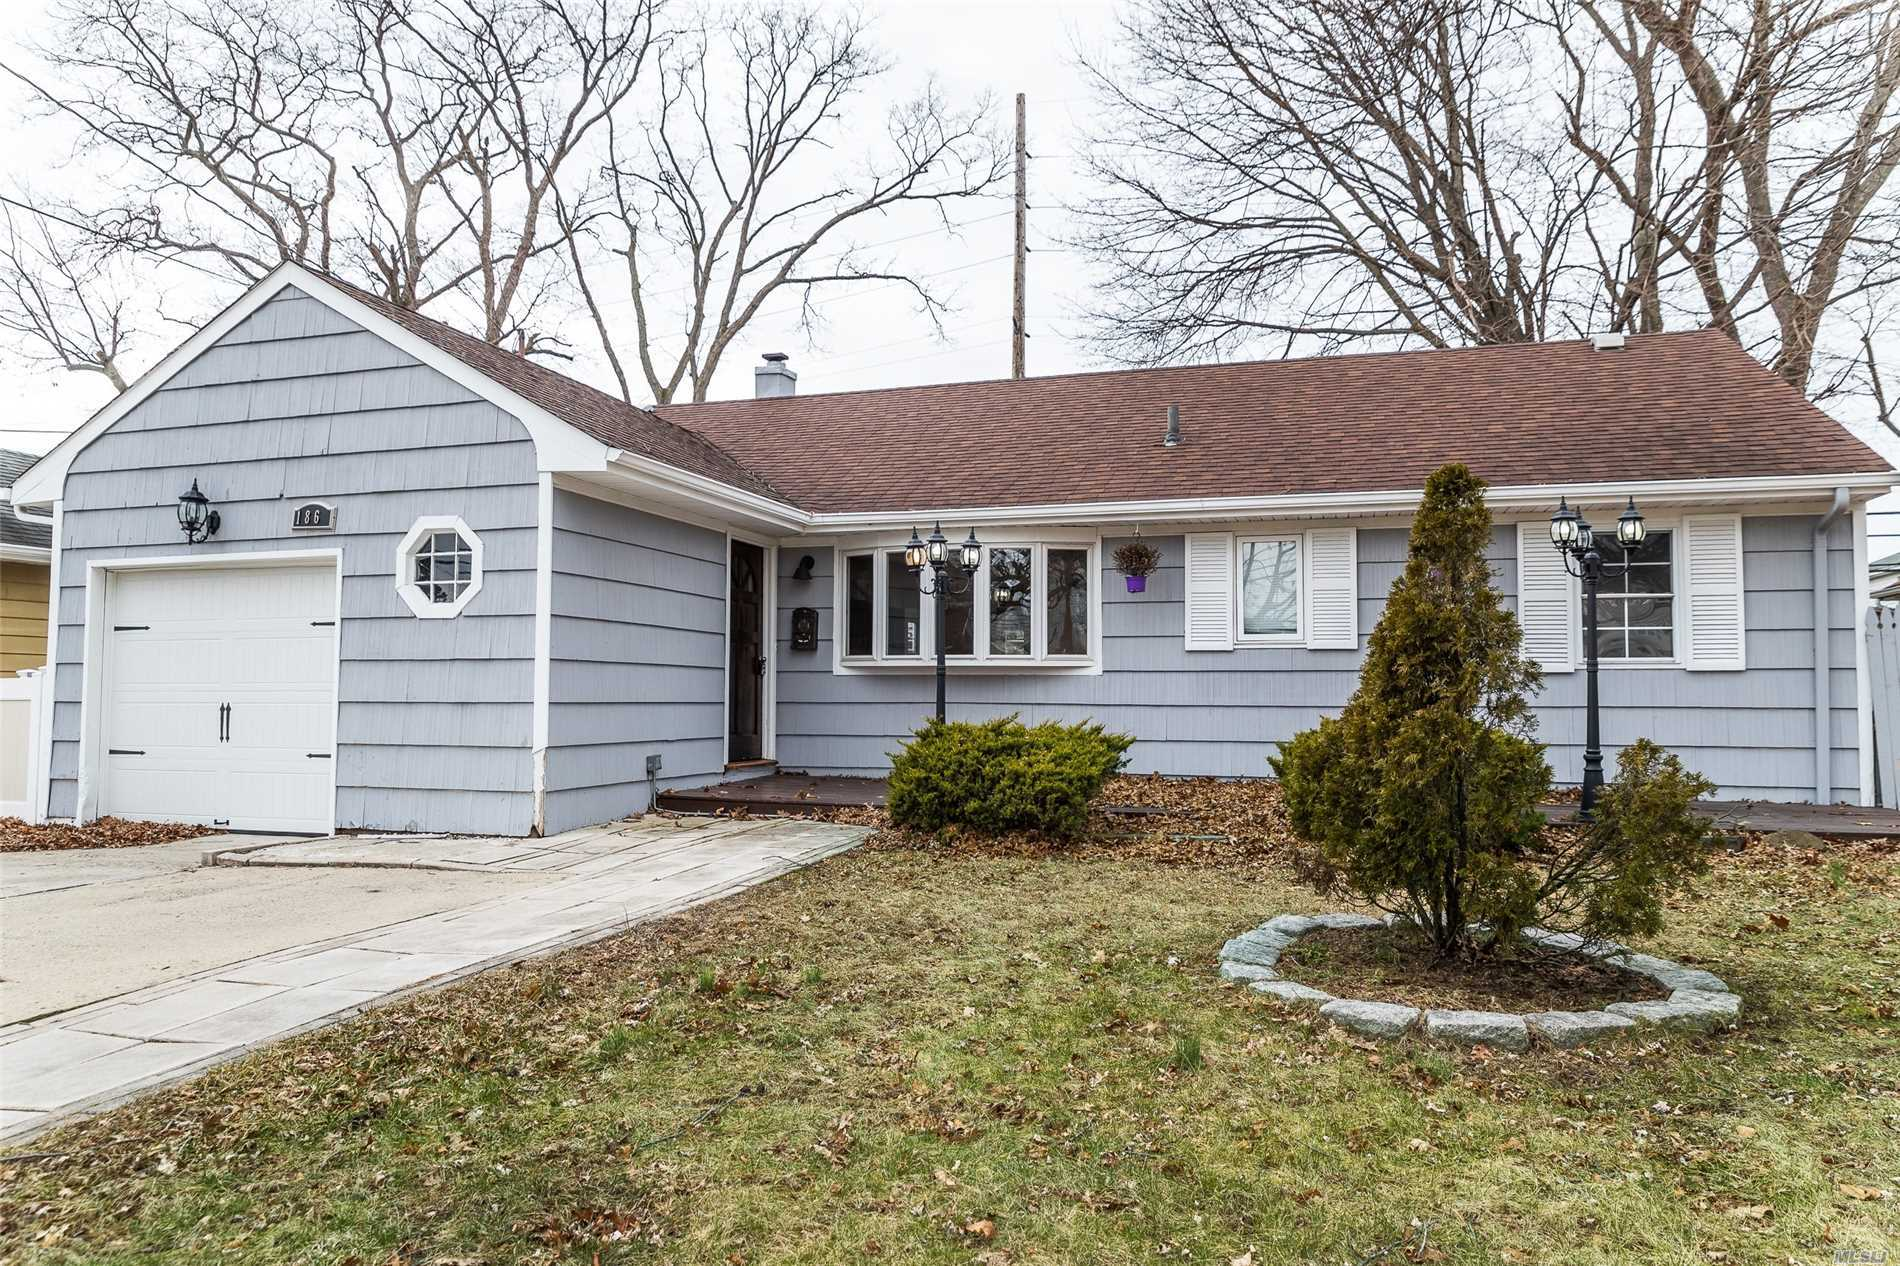 A Beautiful Ranch Home On Tree-Lined Street. Comfortable Living Room, Beautiful Dining Room, Gorgeous Kitchen. Awesome Bedrooms. Great Bathrooms. Close To Shops And Transportation. Great School District. 25 Minutes To Brooklyn, 15 Minutes To Queens And 30 Minutes To Manhattan Via Lirr And More...